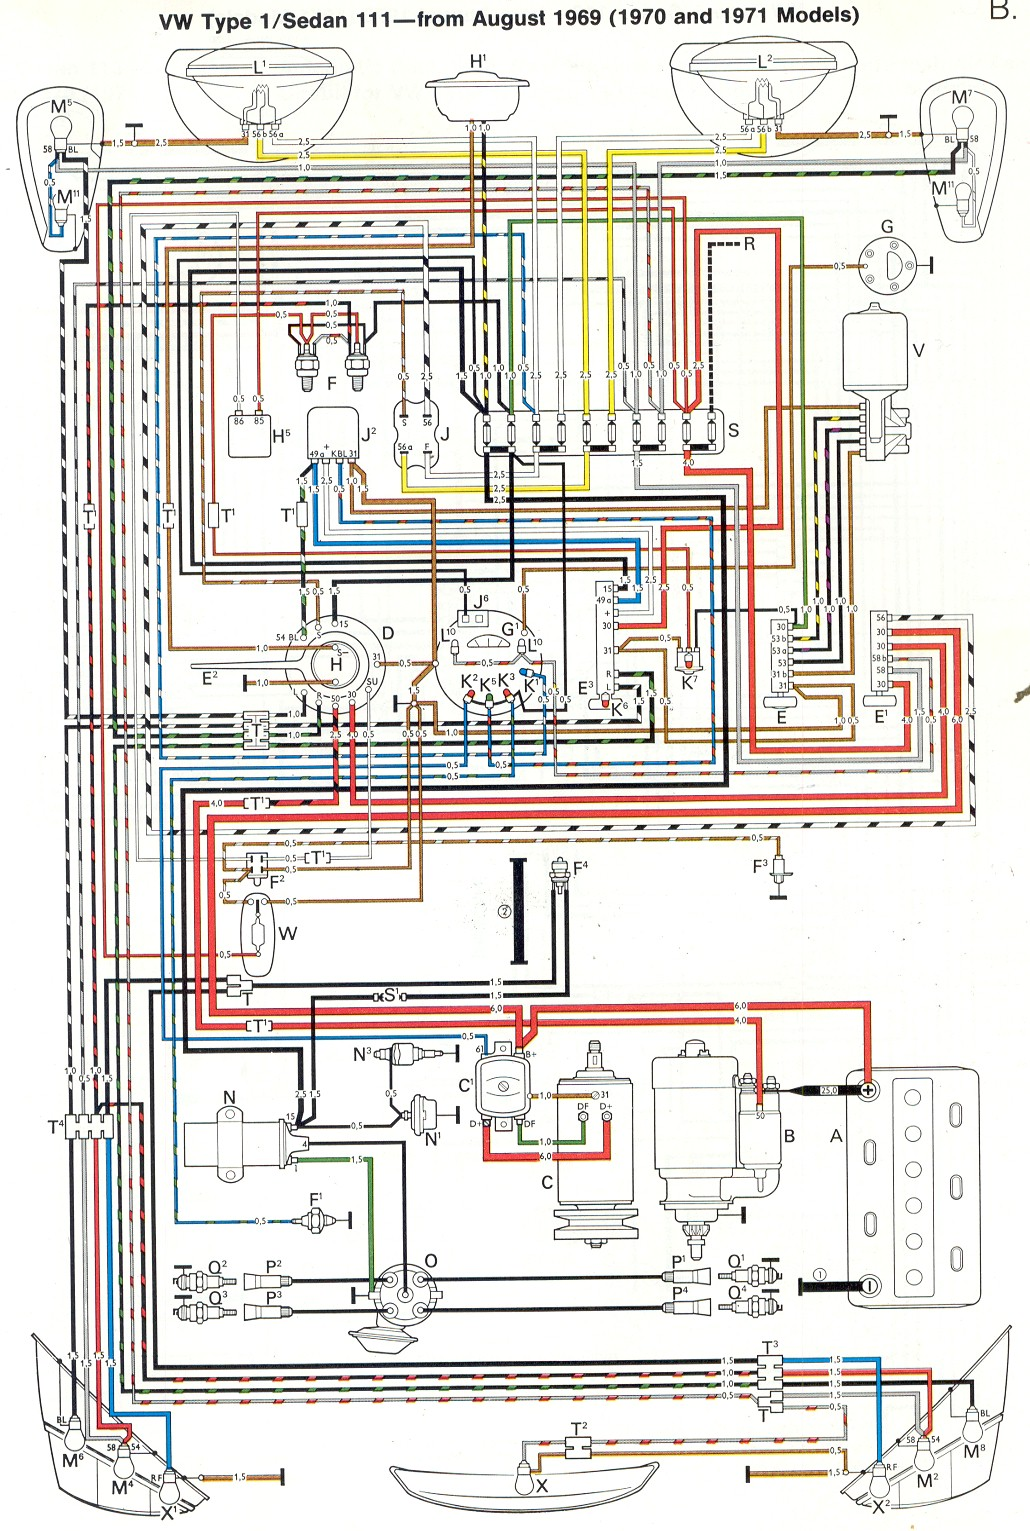 1969 vw beetle wiring wiring schematic diagram 1969 VW Bus Fuse Box vw bug plete wiring harness in addition vw beetle engine wiring 1969 vw beetle frame 1969